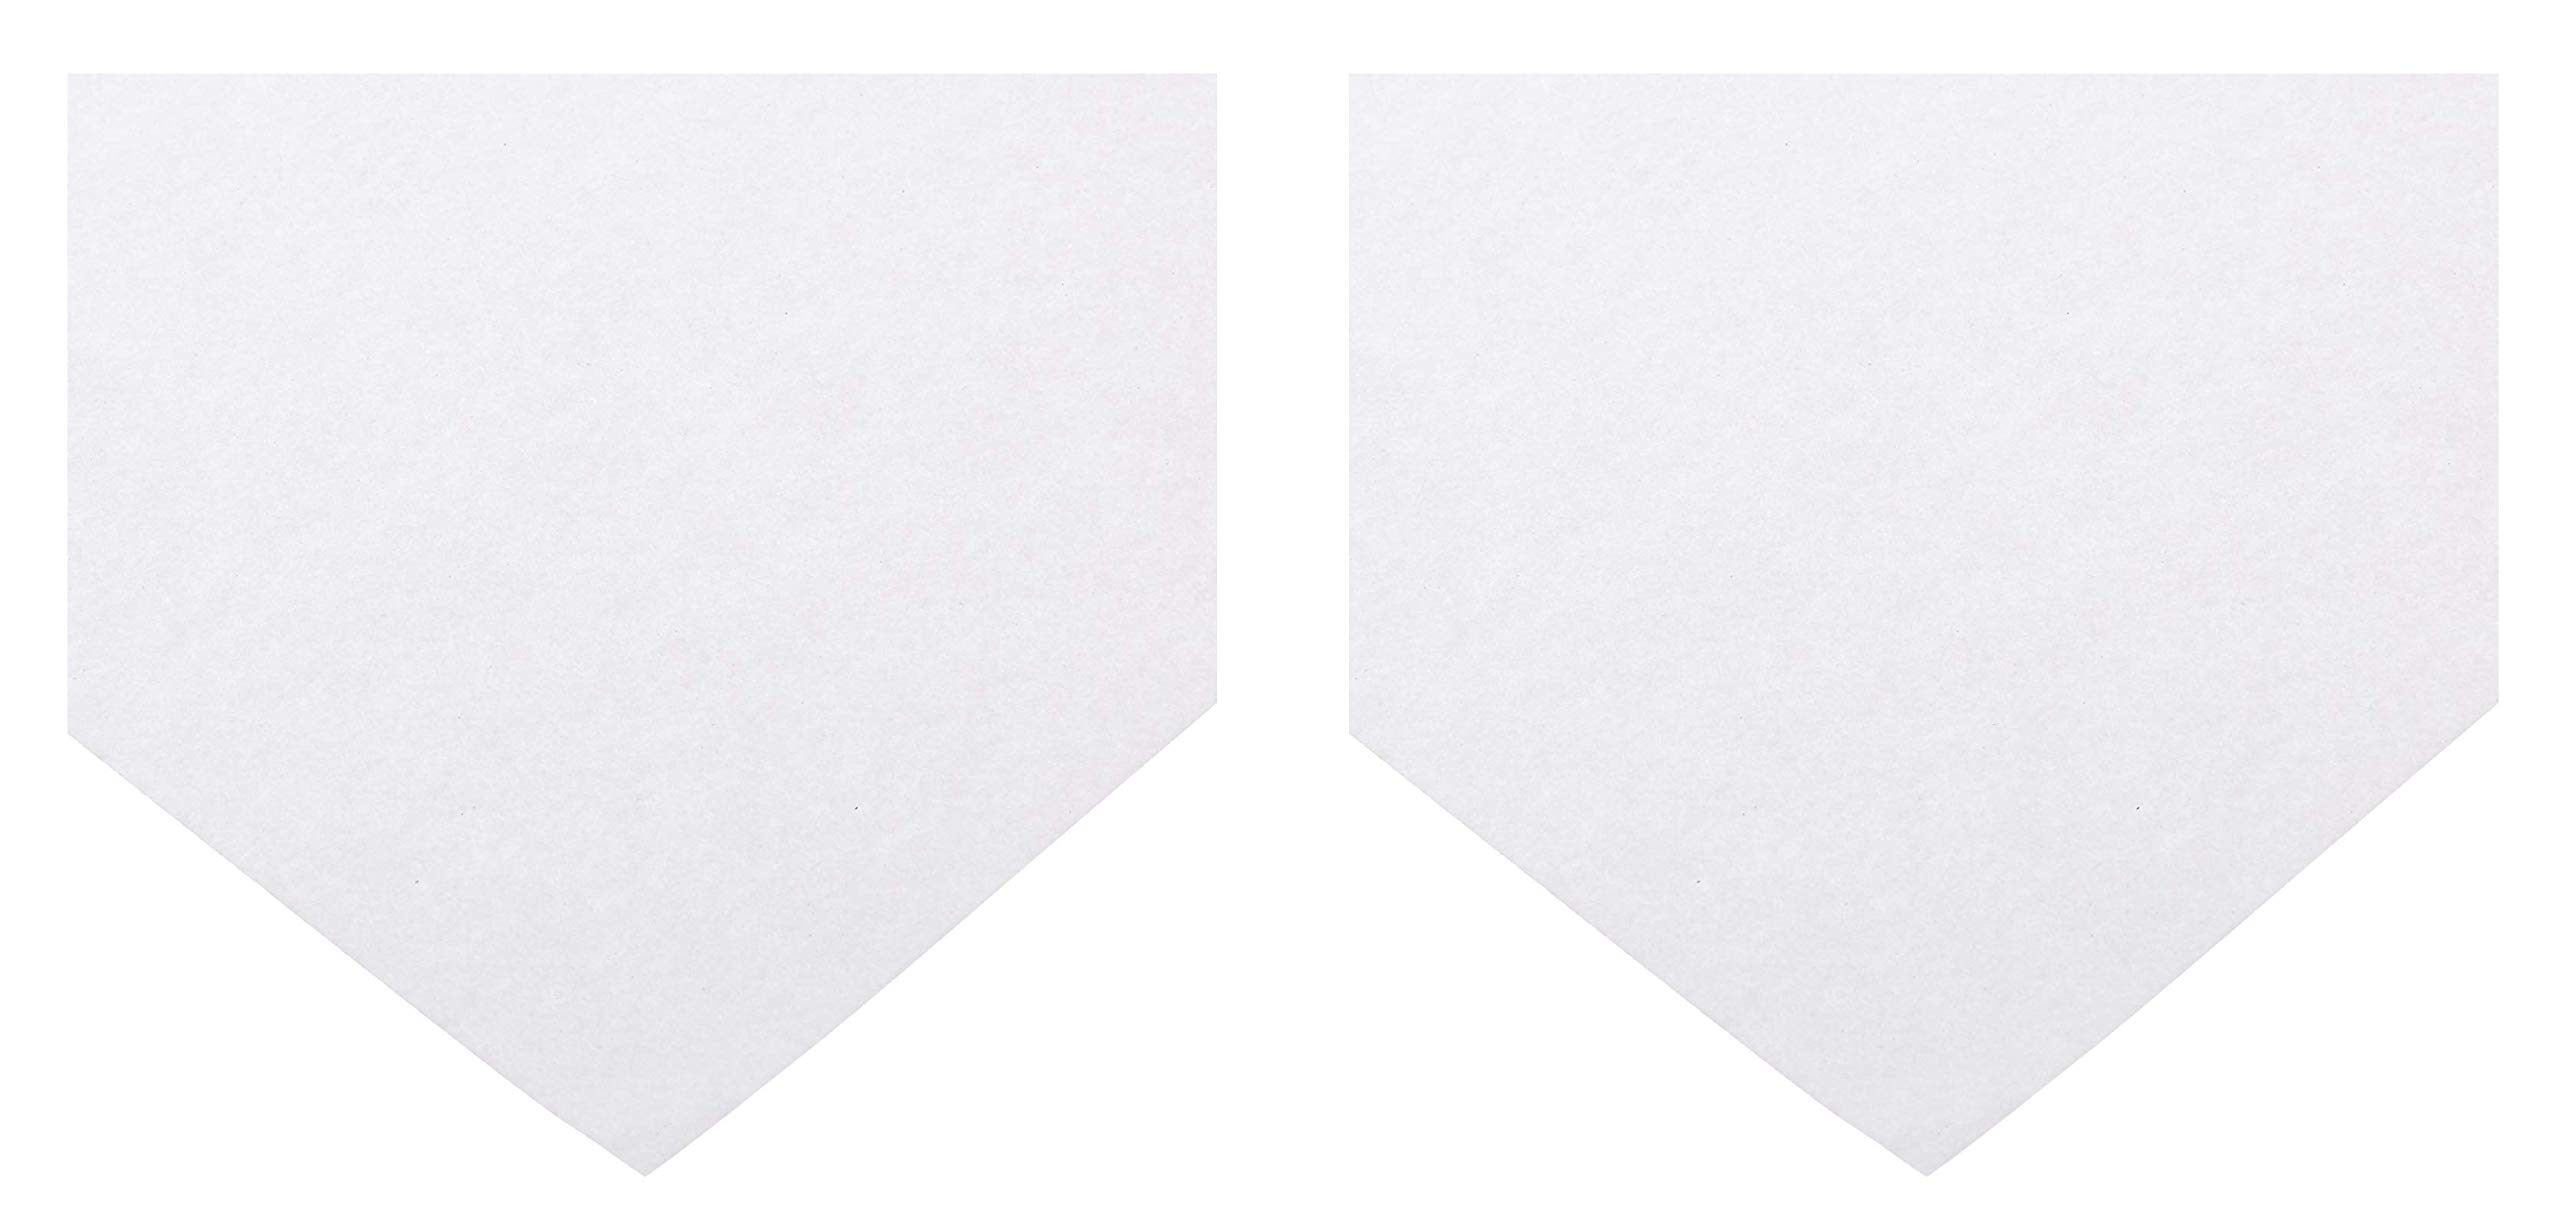 Sax Sulphite Drawing Paper, 90 lb, 9 x 12 Inches, Extra-White, Pack of 500 (2-Pack) by Sax